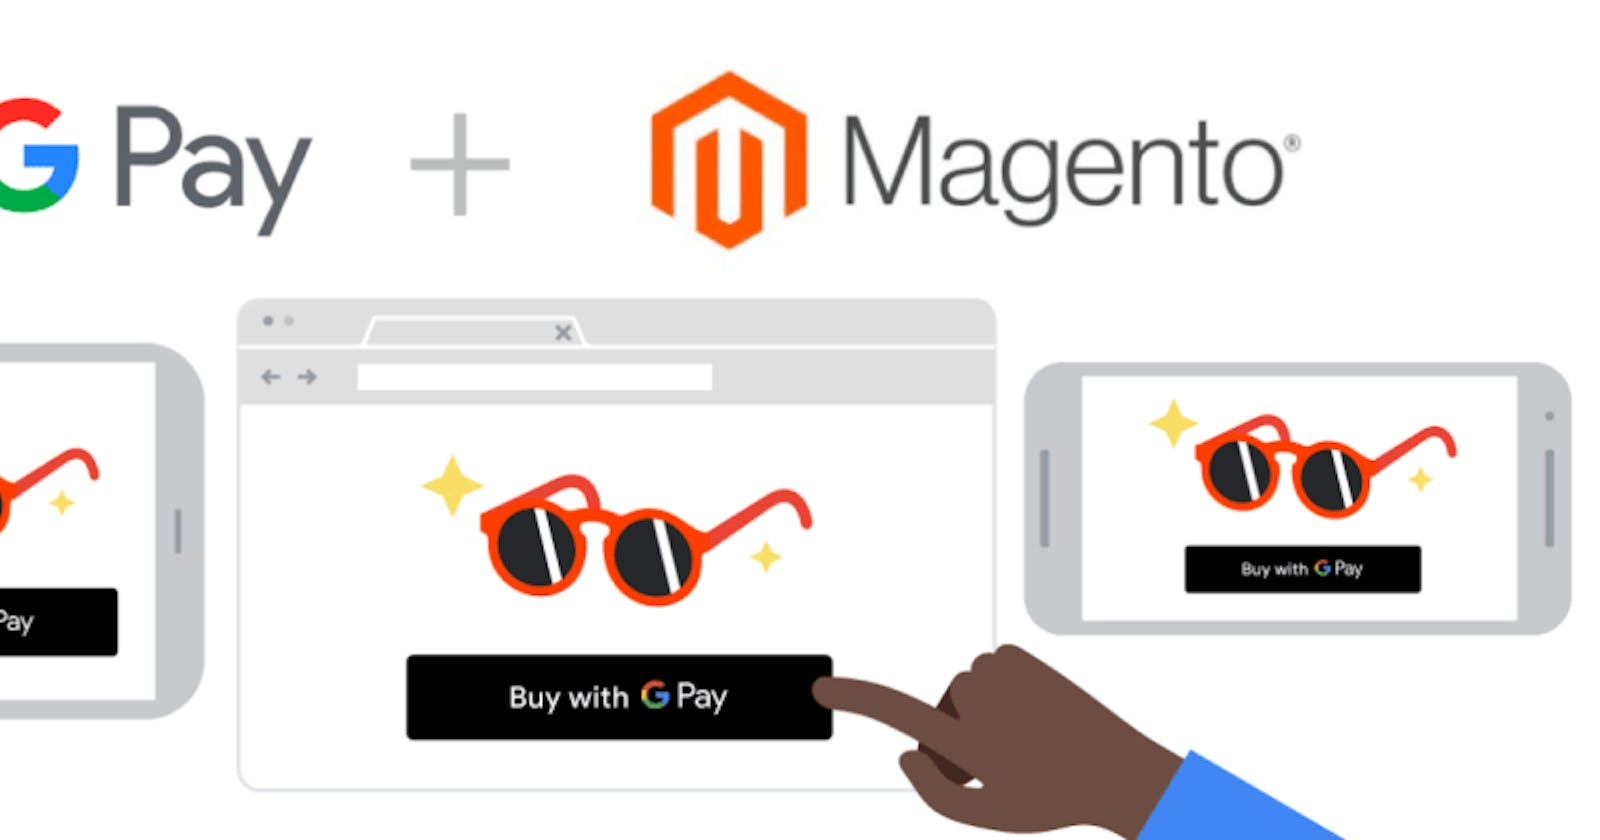 Google launched G Pay to Magento 2